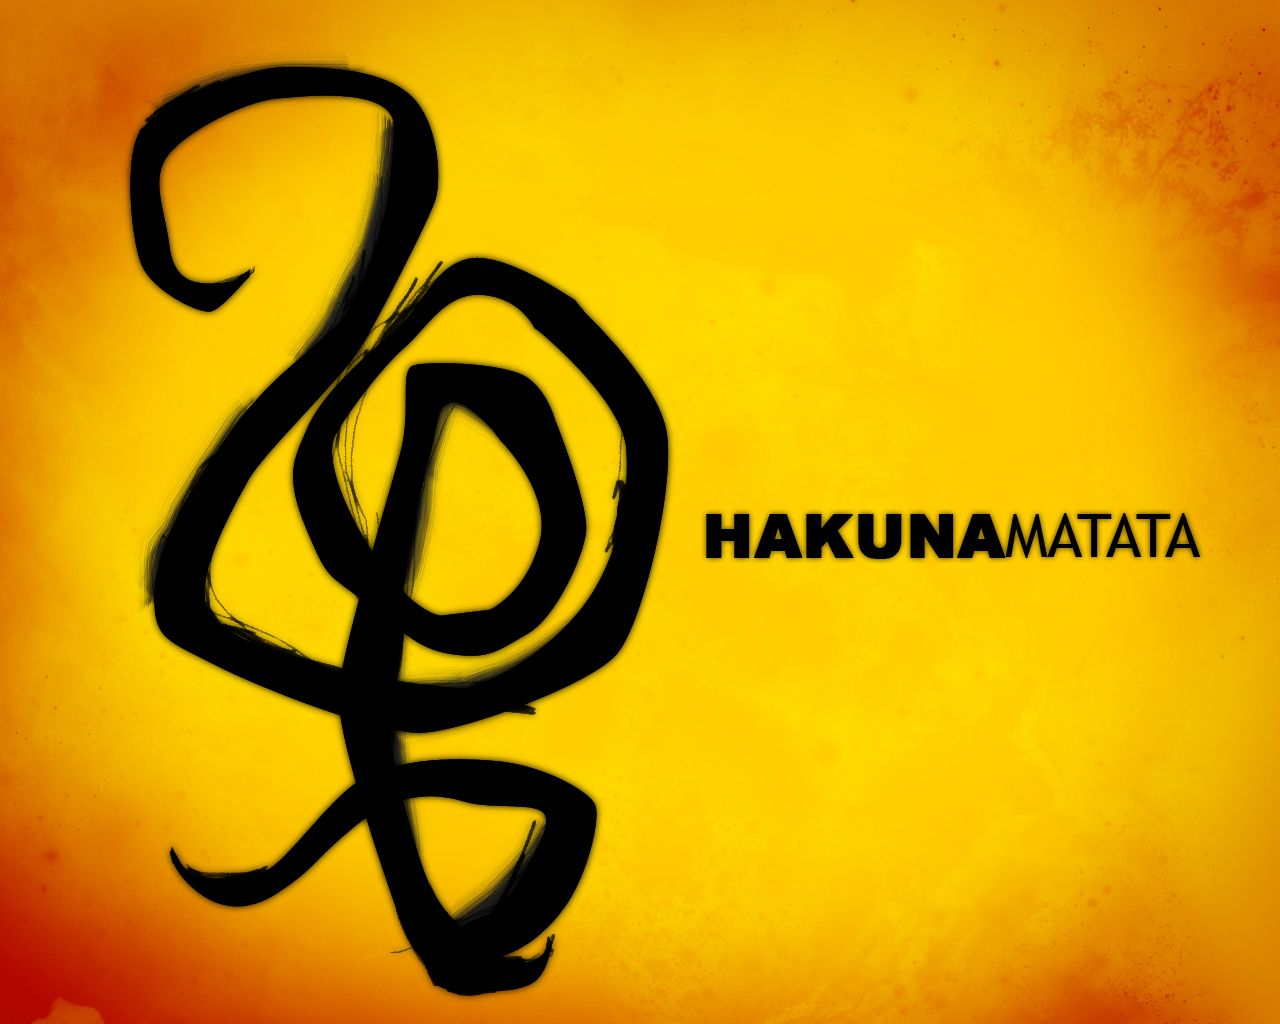 Akuna Matata - what is it and how is it translated